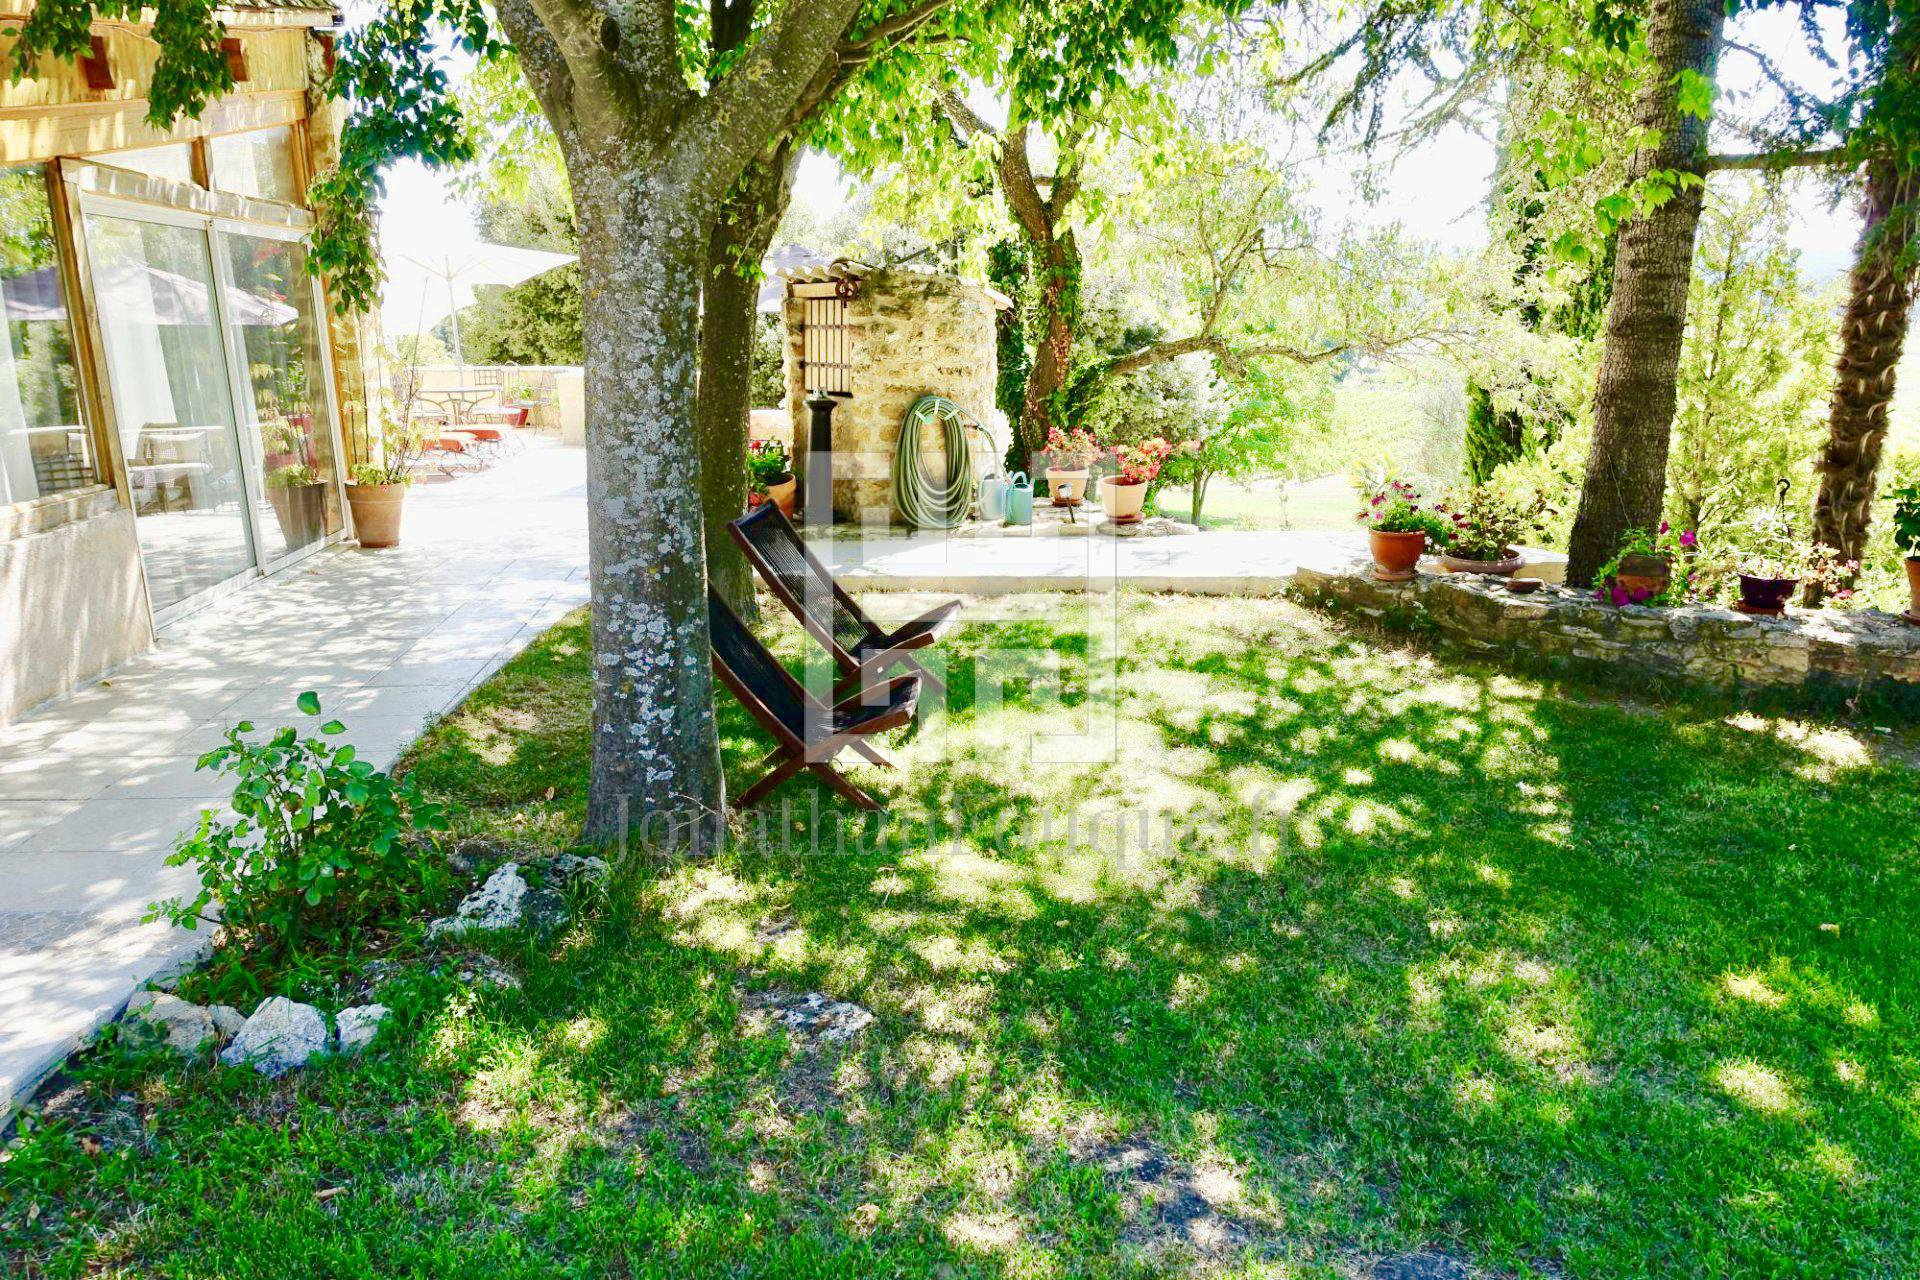 PAYS D'AIX - ONE HECTARE PROPERTY